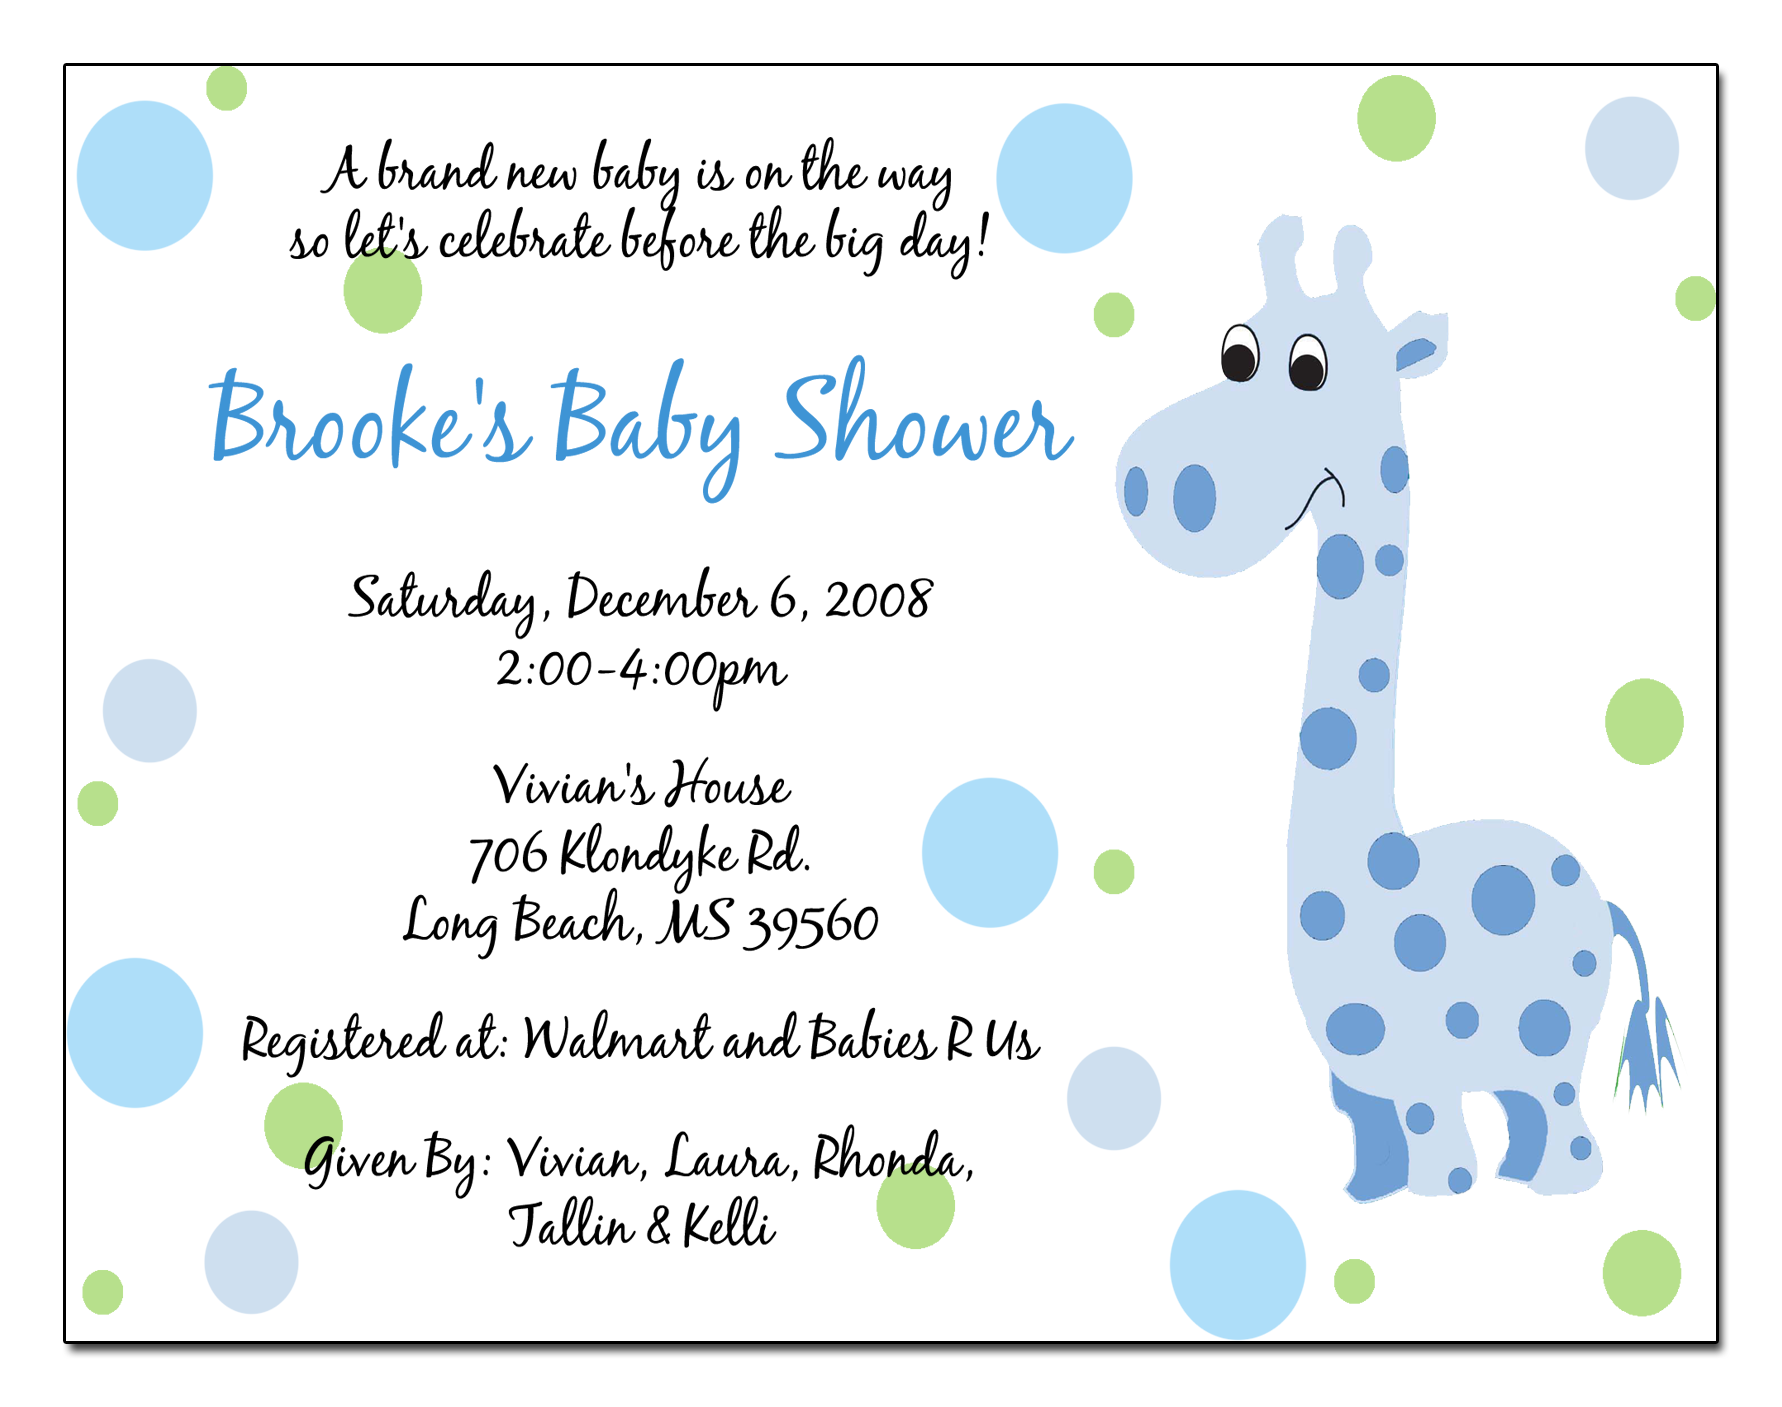 Baby shower invitation wording baby showerpregnancybirthbaby baby shower invitation wording stopboris Choice Image